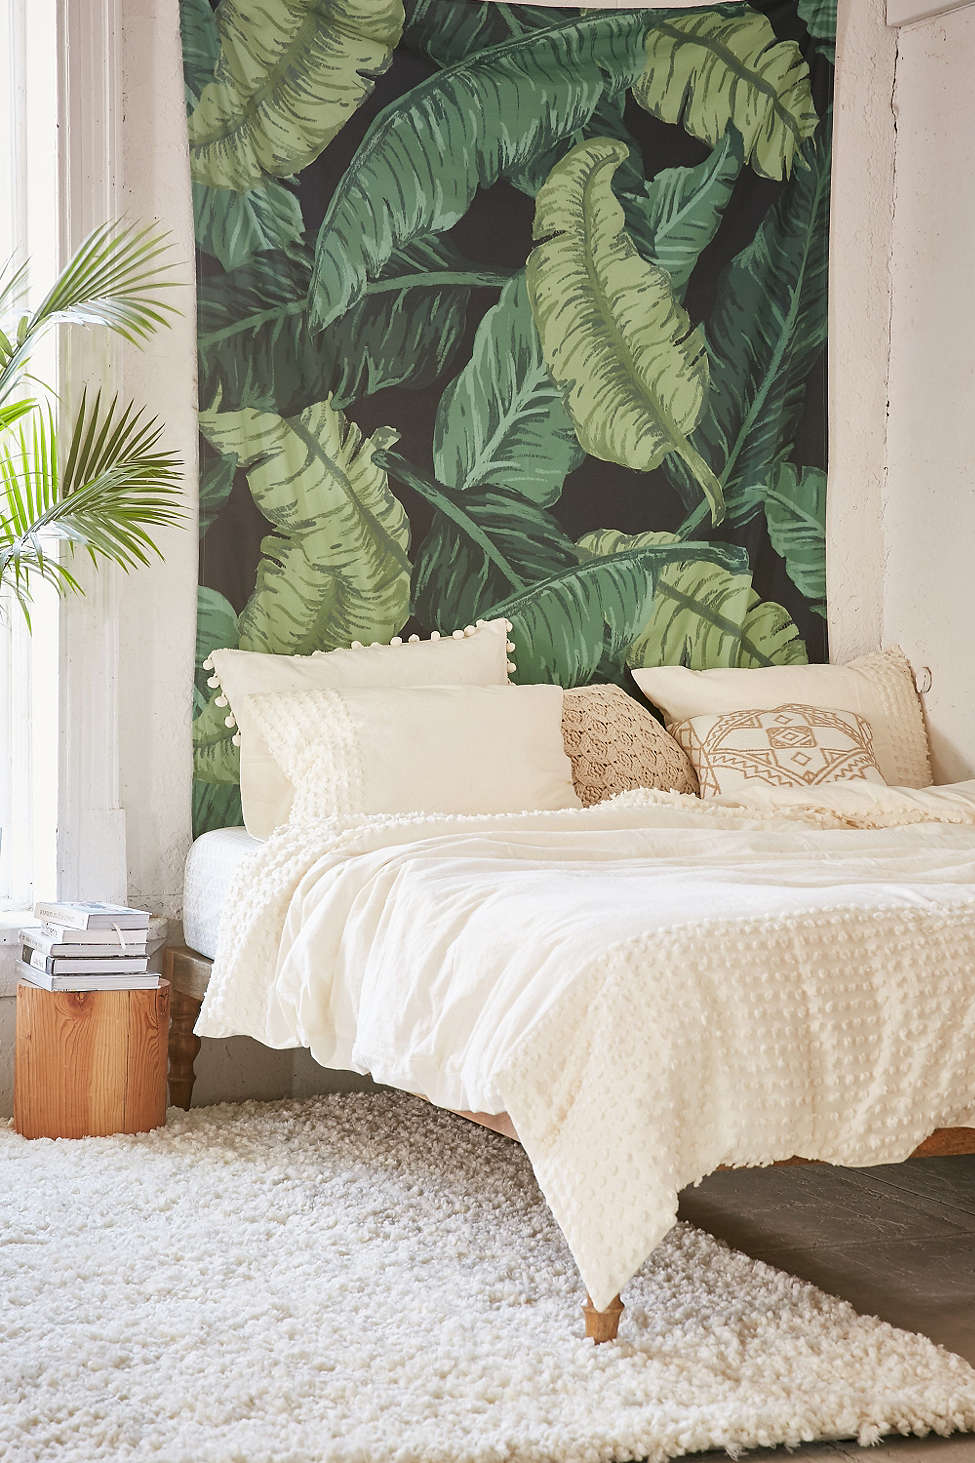 Banana leaf tapestry